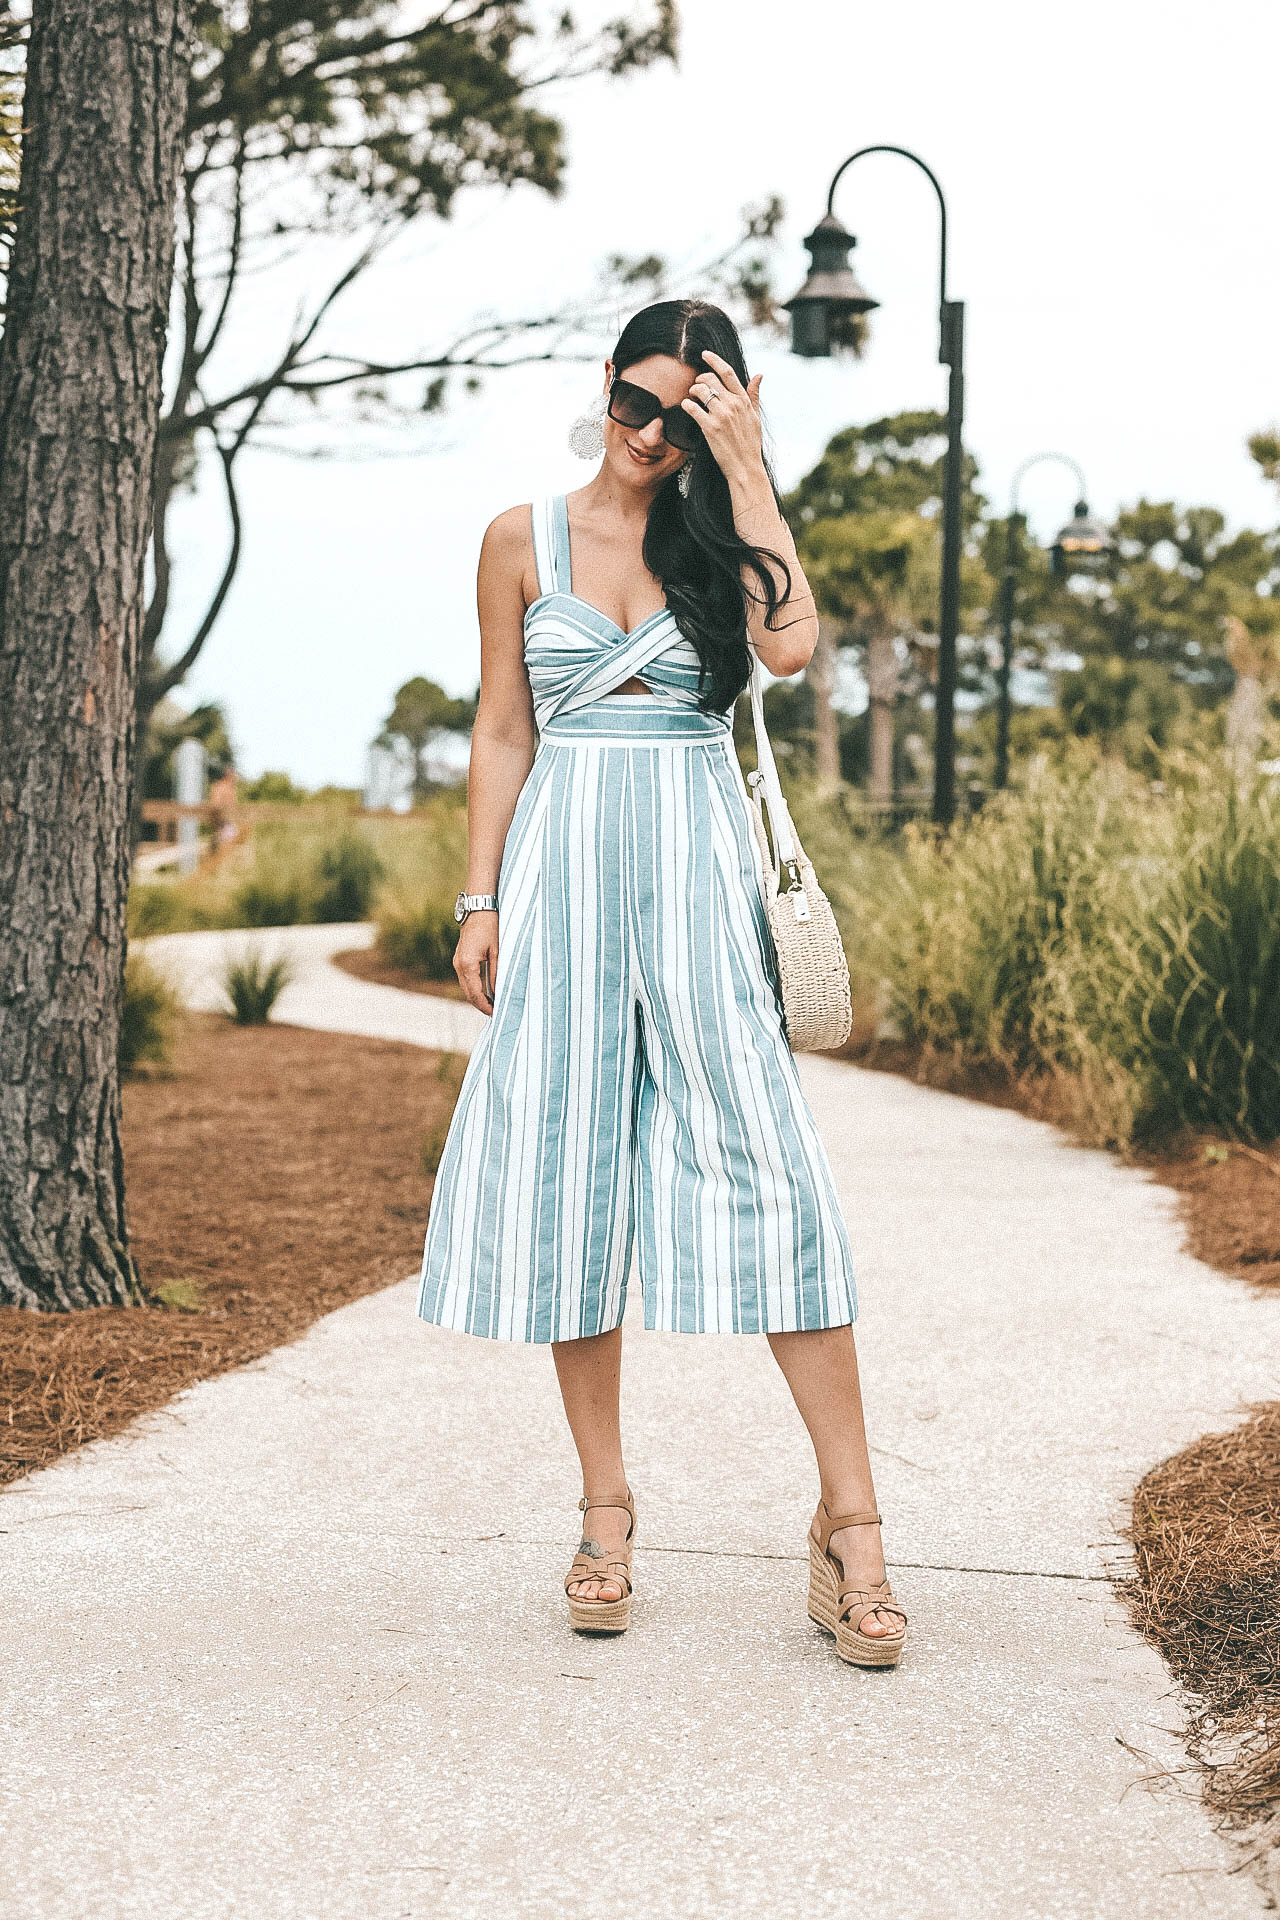 DTKAustin shares her must have romper/jumpsuit for summer from Red Dress Boutique that is under $100 | summer style | summer fashion | summer outfits | women's outfits | summer romper | summer jumpsuit | outfits under $100 || DTK Austin #summerstyle #summerfashion #summeroutfit #womensoutfit #summerjumpsuit #fashionunder100 #under100 #affordablestyle #dtkaustin